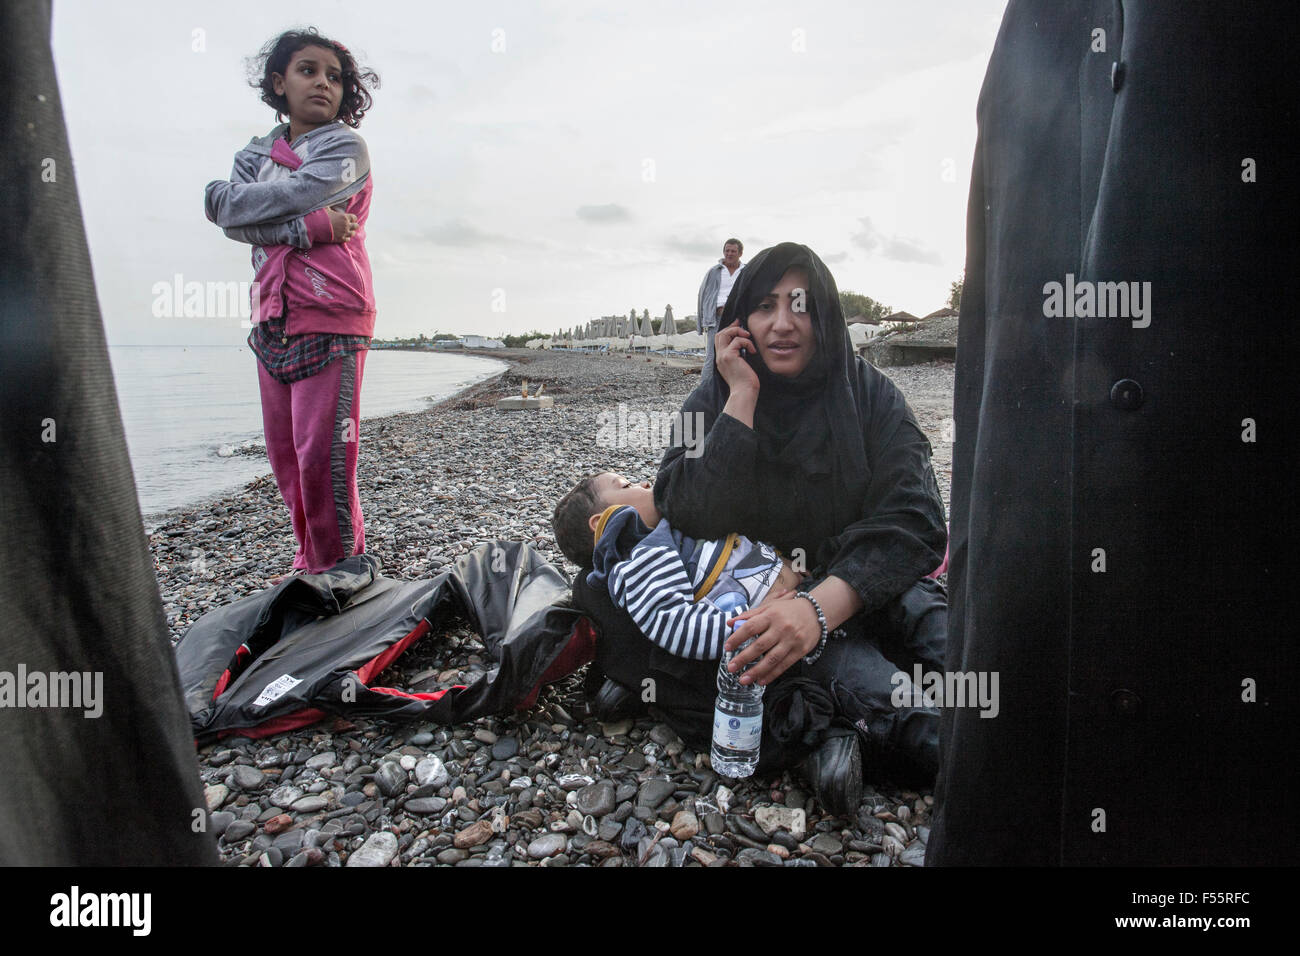 A lot of refugees call their family or Turkish side to tell them they are alive and they have succeeded. - Stock Image